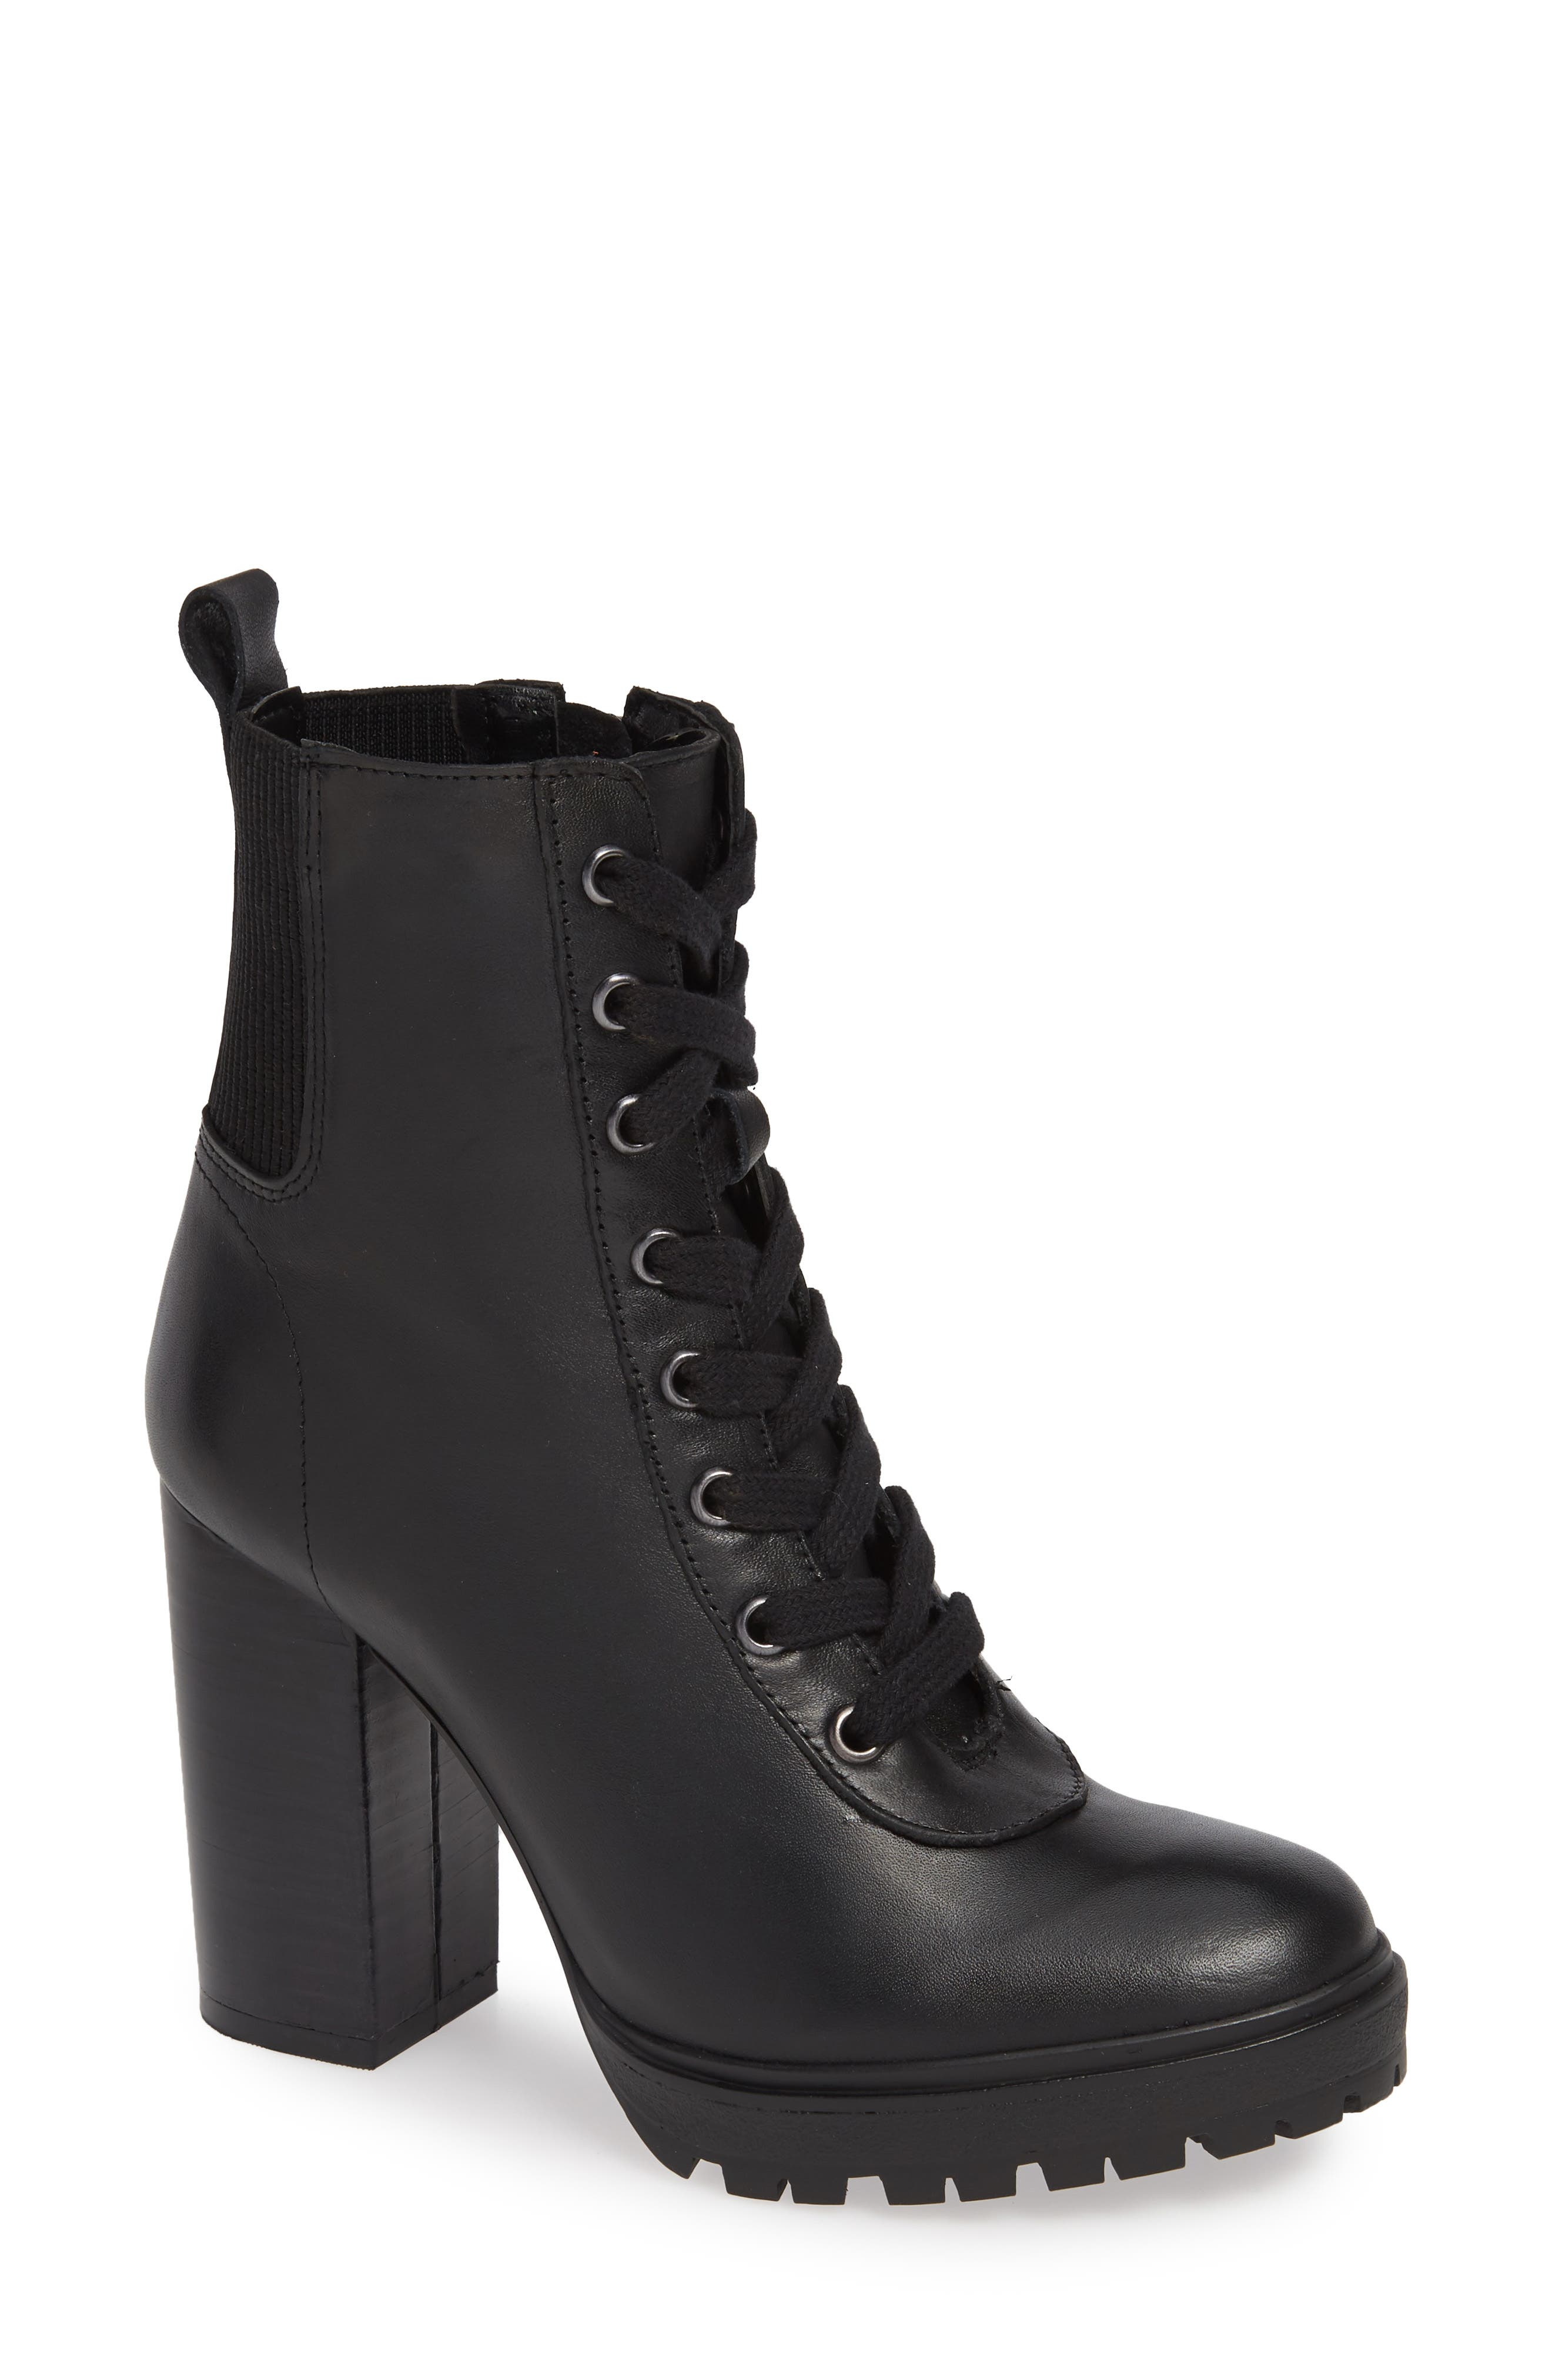 STEVE MADDEN, Latch Boot, Main thumbnail 1, color, BLACK LEATHER